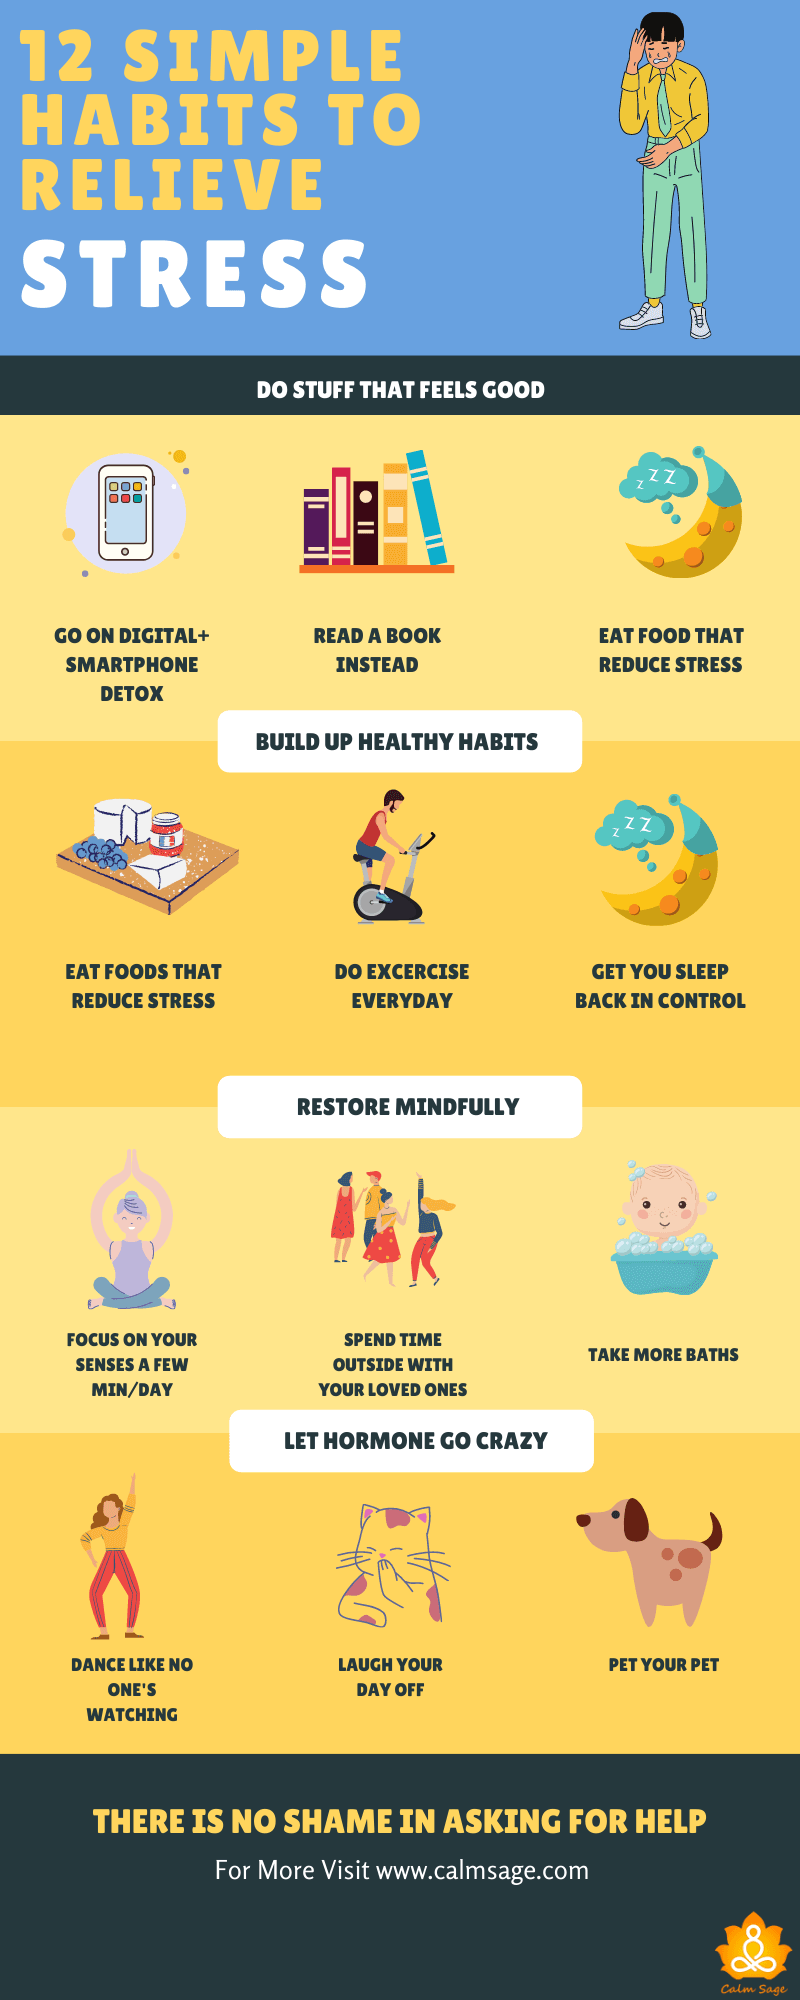 habits to relive stress